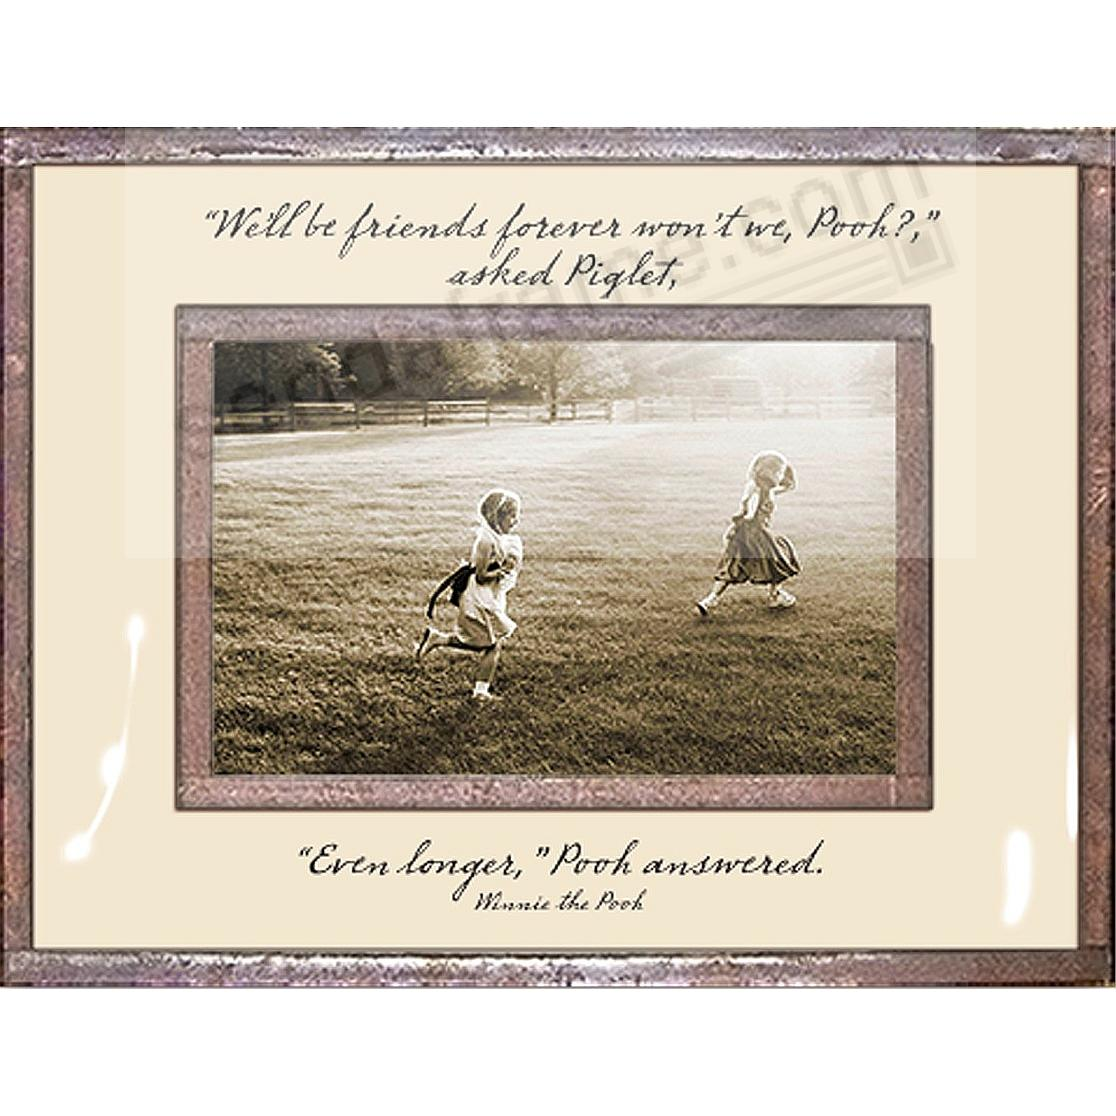 FRIENDS FOREVER?...EVEN LONGER - WINNIE THE POOH Copper + Clear Glass 6x4 Frame by Ben's Garden®